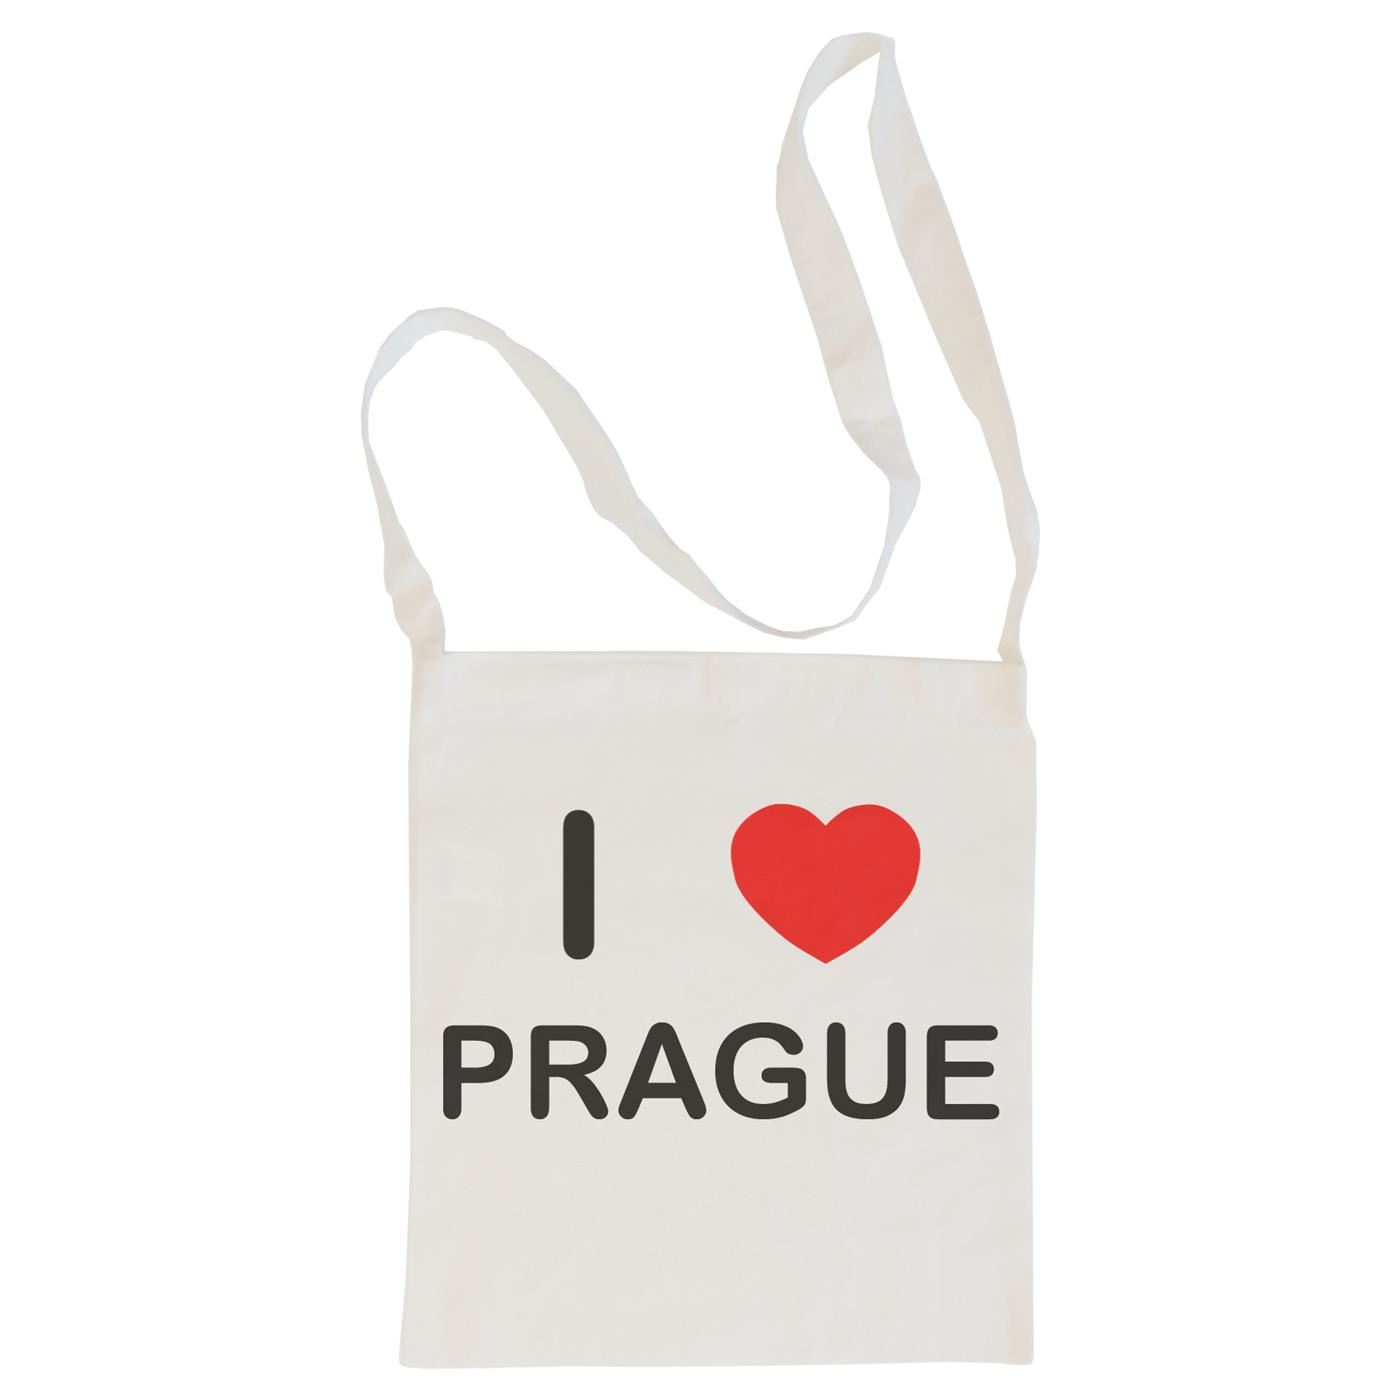 I Love Prague - Cotton Bag | Size choice Tote, Shopper or Sling